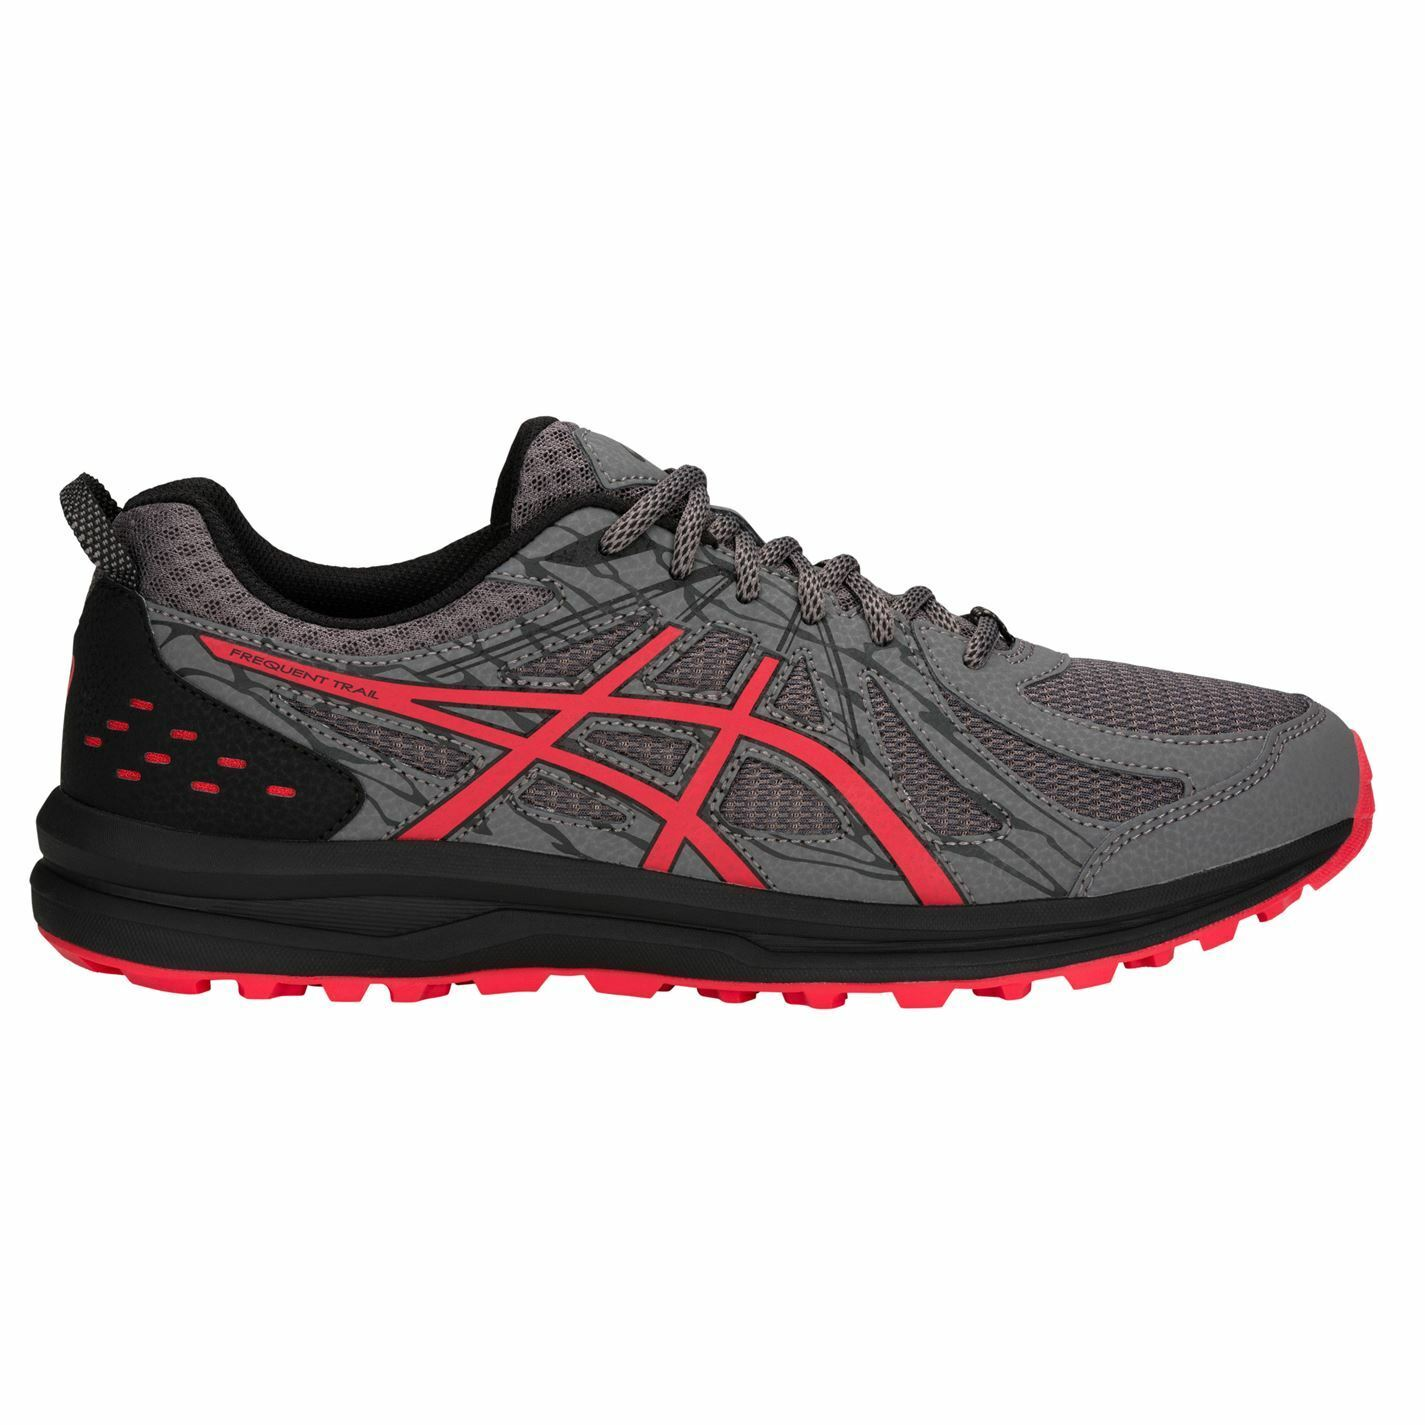 Asics Hombres Frequent Xt Trail Zapatos Para Correr Zapatillas Running Deporte